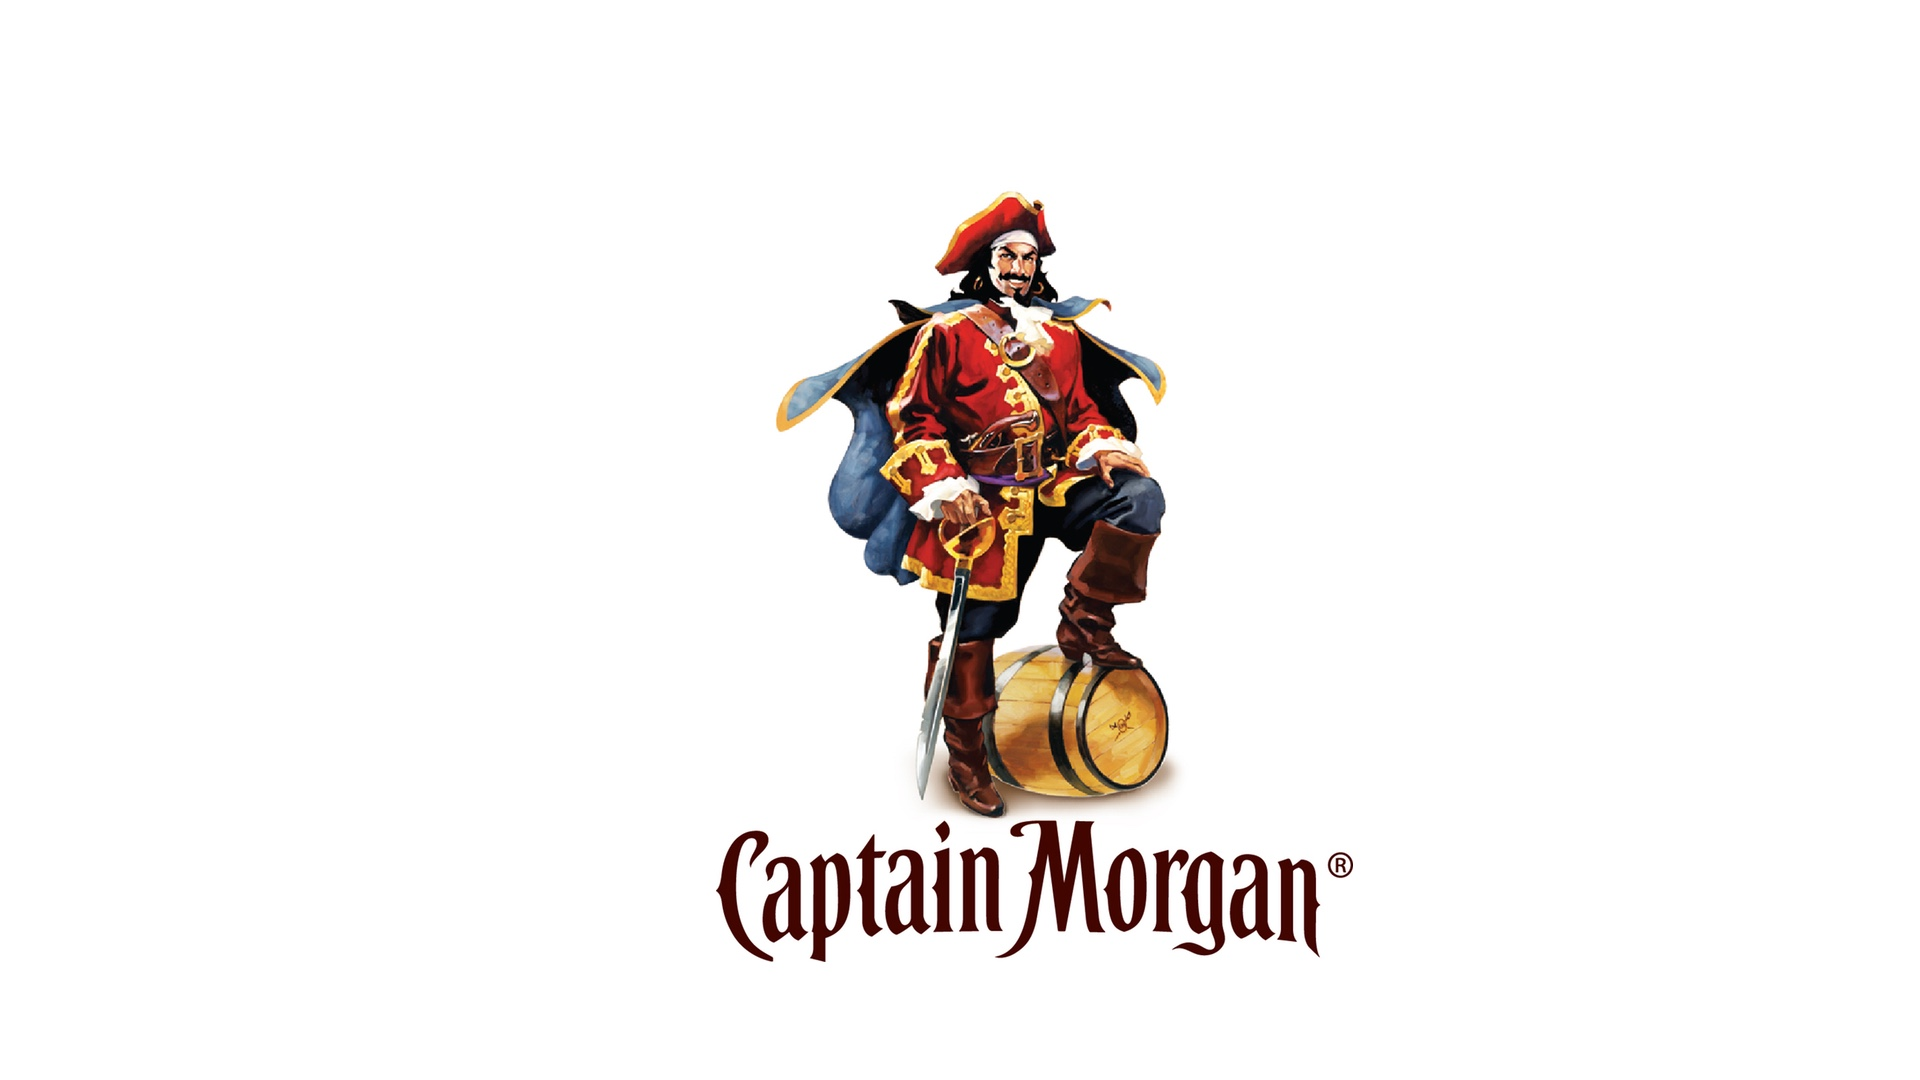 captainmorgan logo.jpg